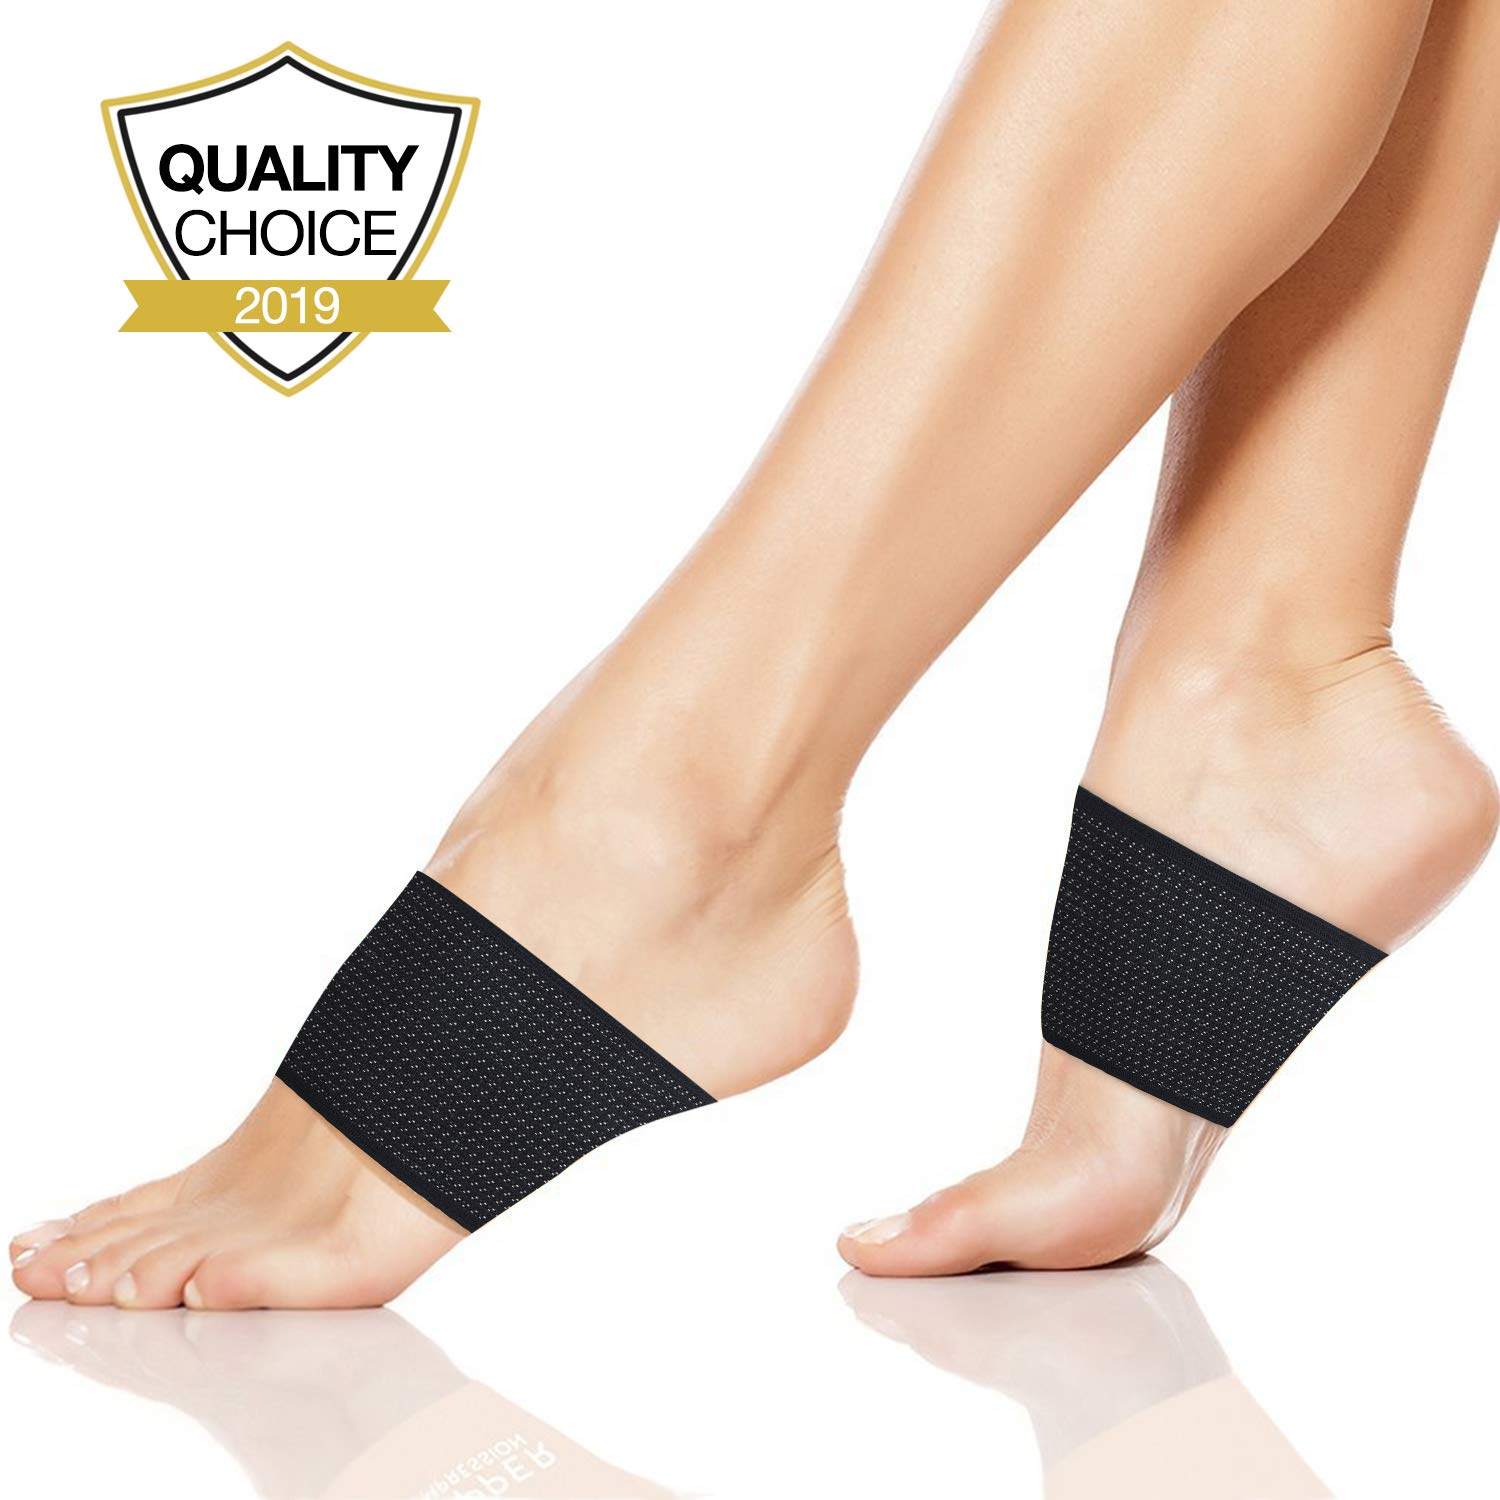 1d57fd5587 Amazon.com: Plantar Fasciitis Support, Compression Arch Support Brace - 2 Plantar  Fasciitis Sleeves for Flat Feet, Foot Pain, Heel Spurs and High Arch: ...